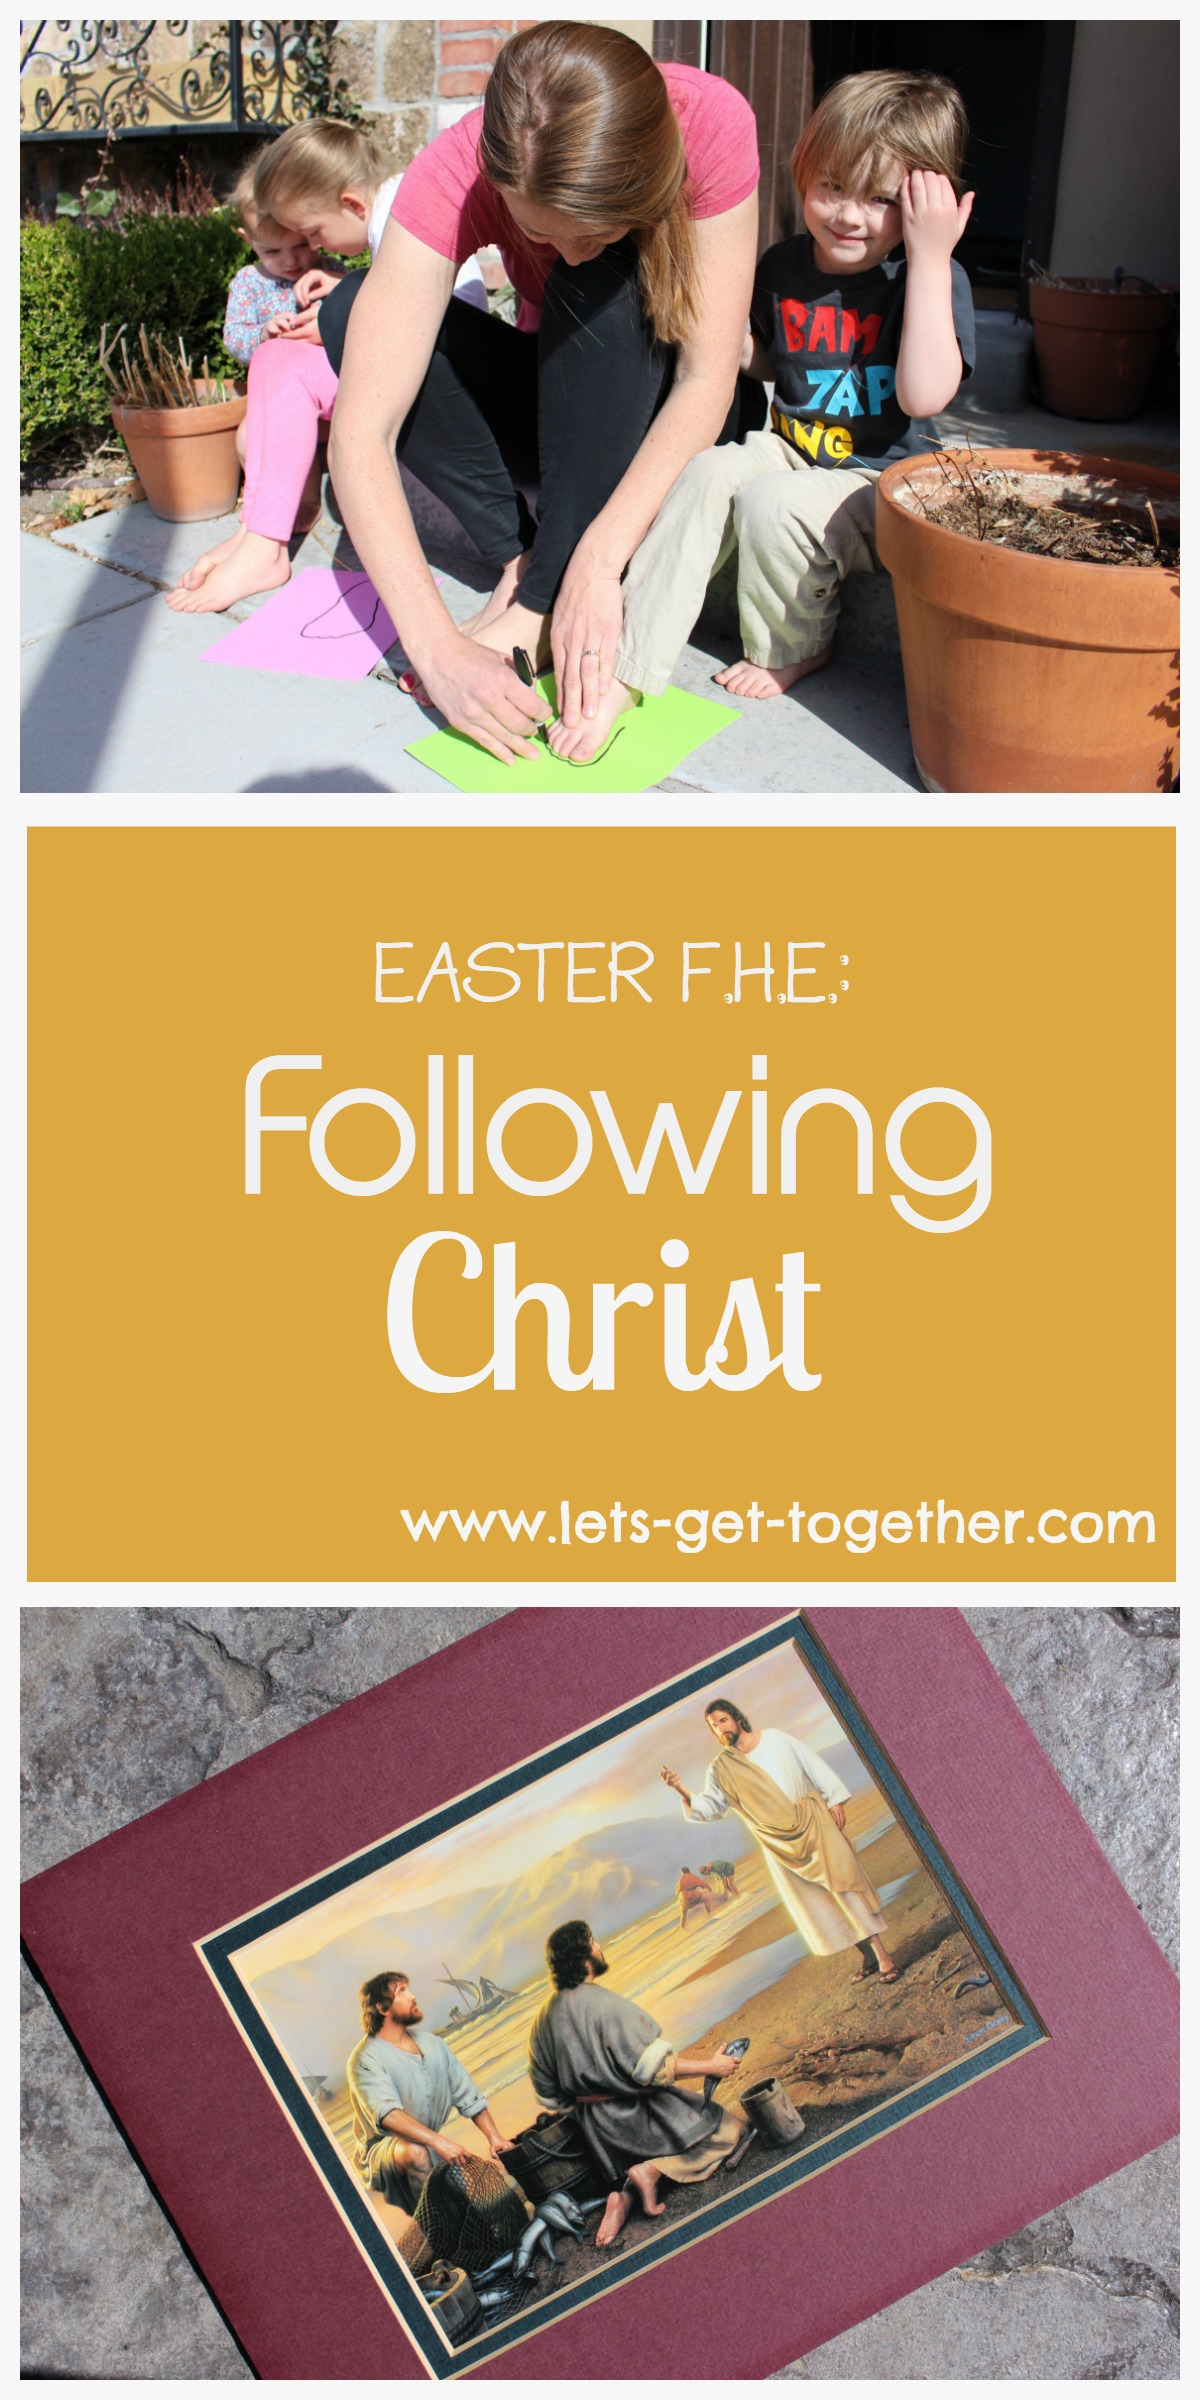 easter fhe following christ